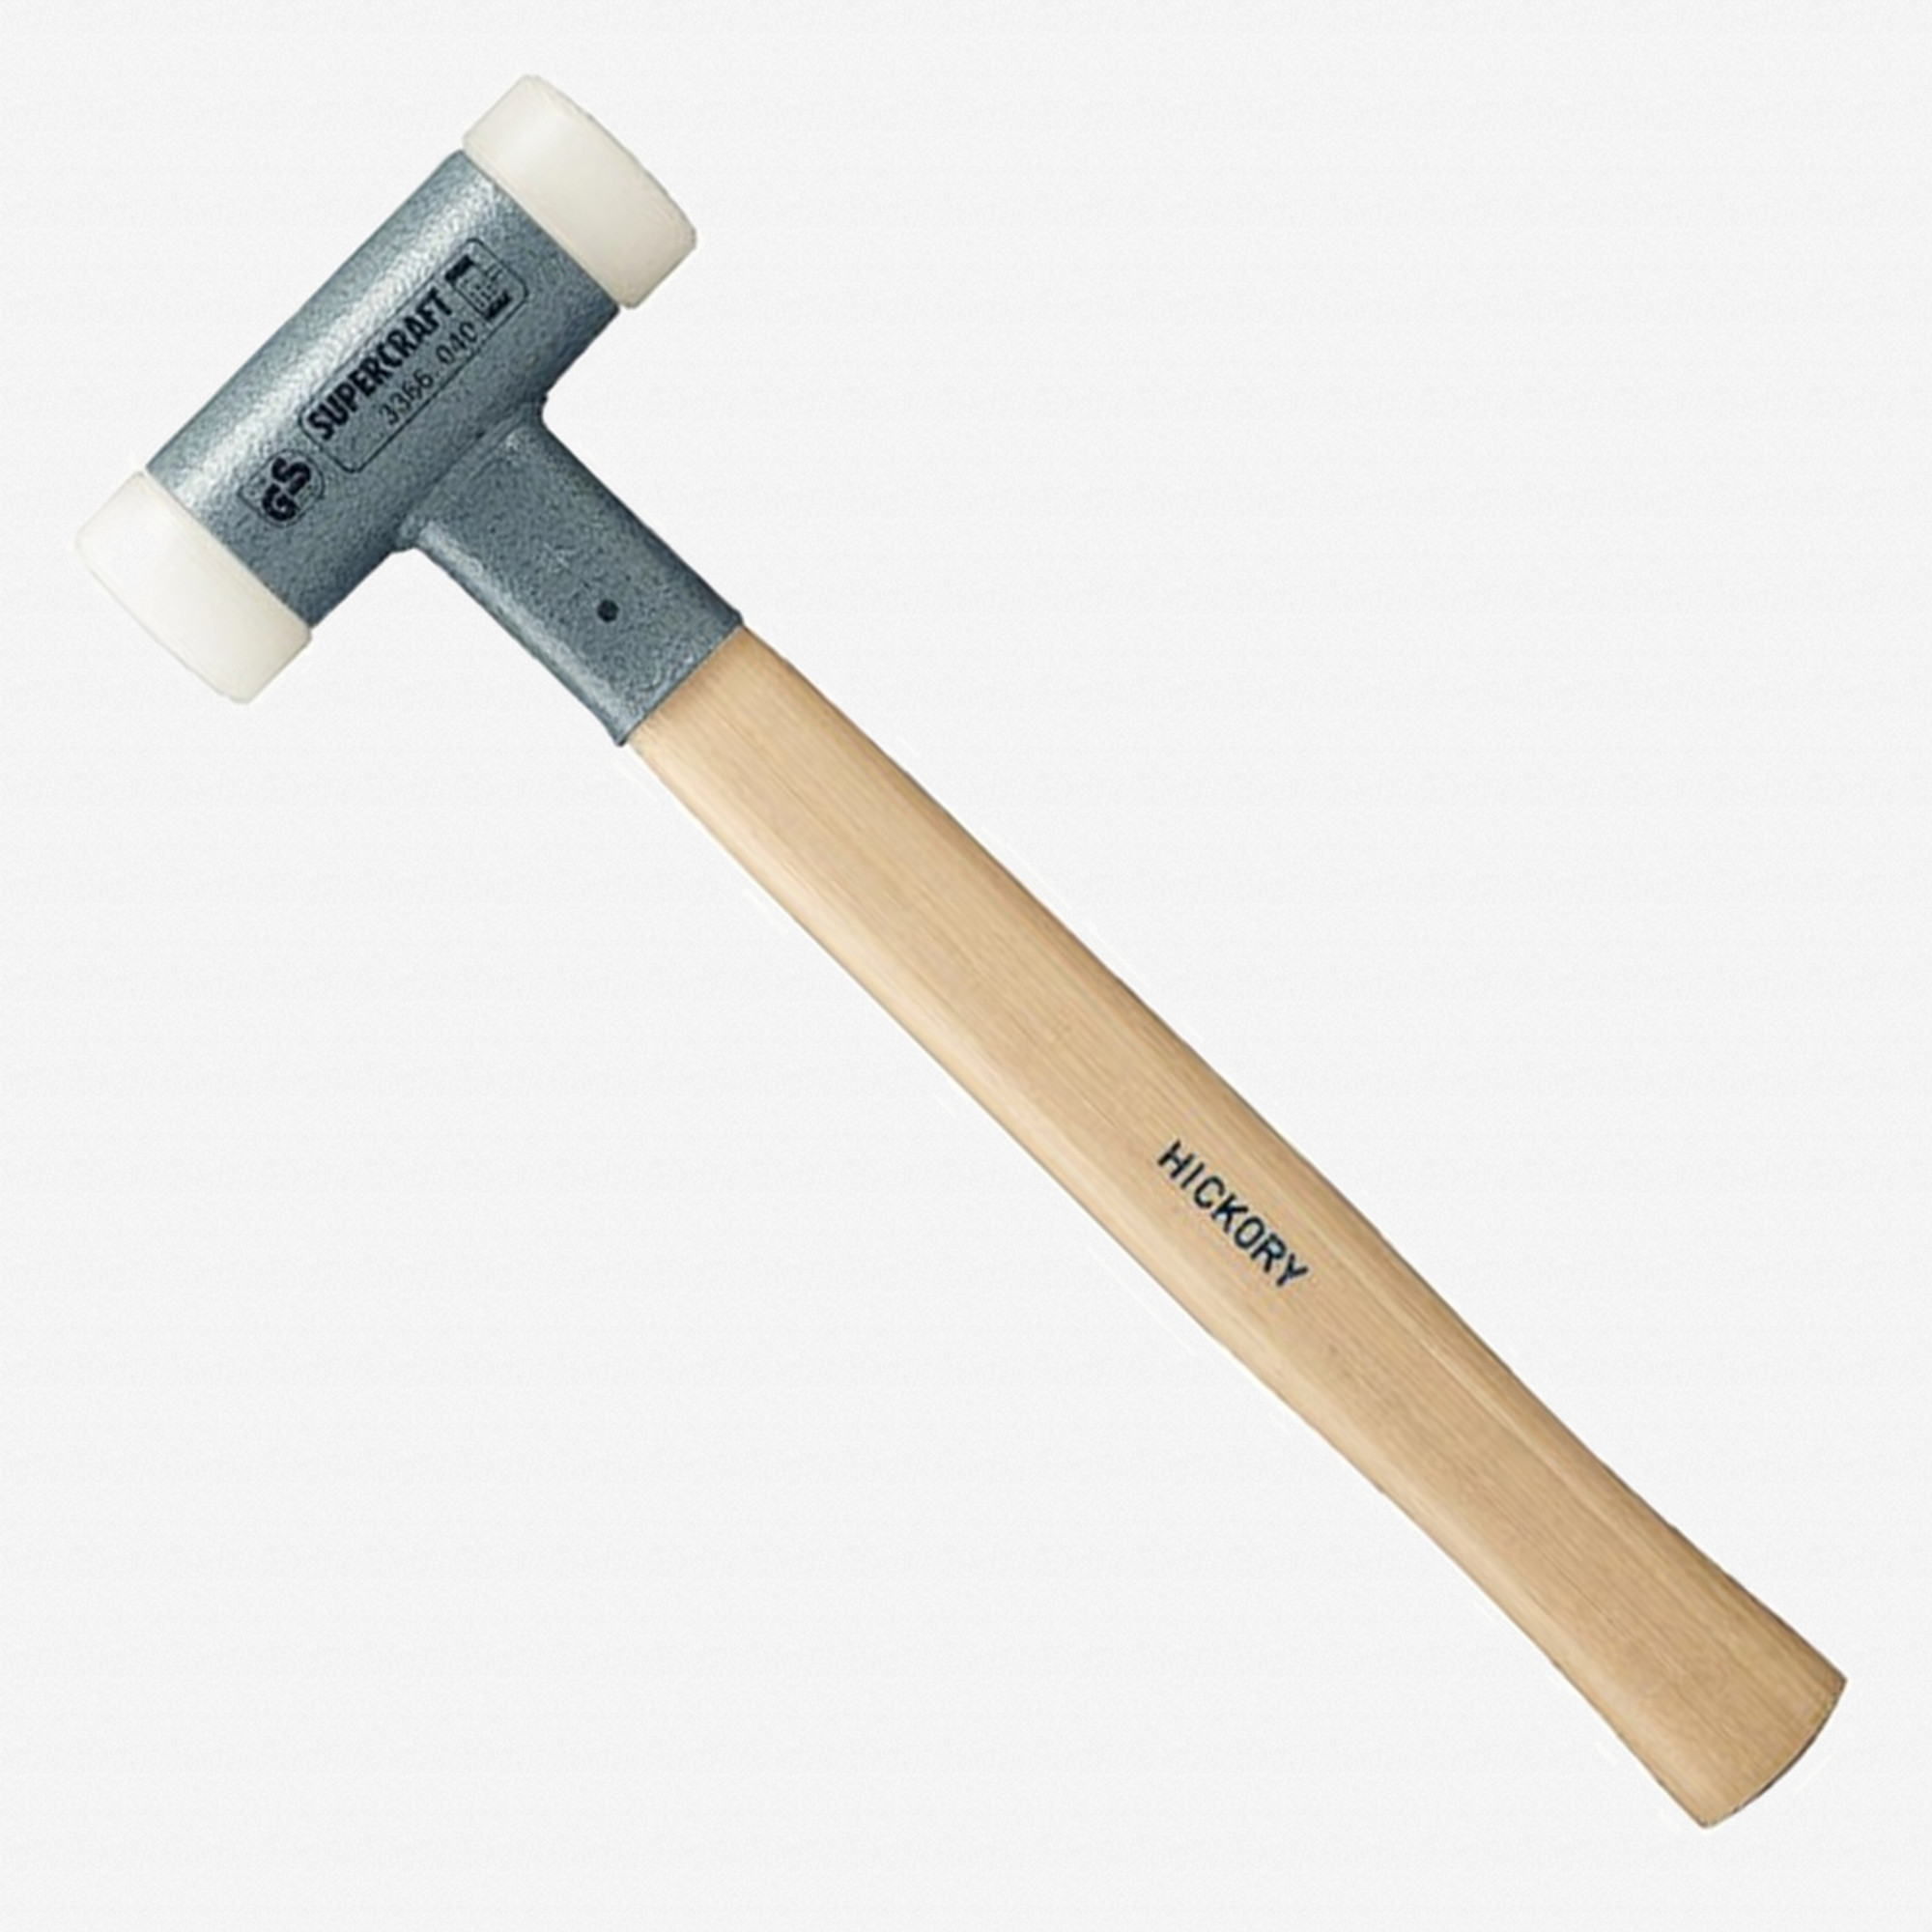 Halder Supercraft Dead Blow Non Rebounding Hammer With Nylon Face Inserts And Steel Housing 0 79 8 64 Oz The soft hammer face helps prevent marring on. halder supercraft dead blow non rebounding hammer with nylon face inserts and steel housing 0 79 8 64 oz